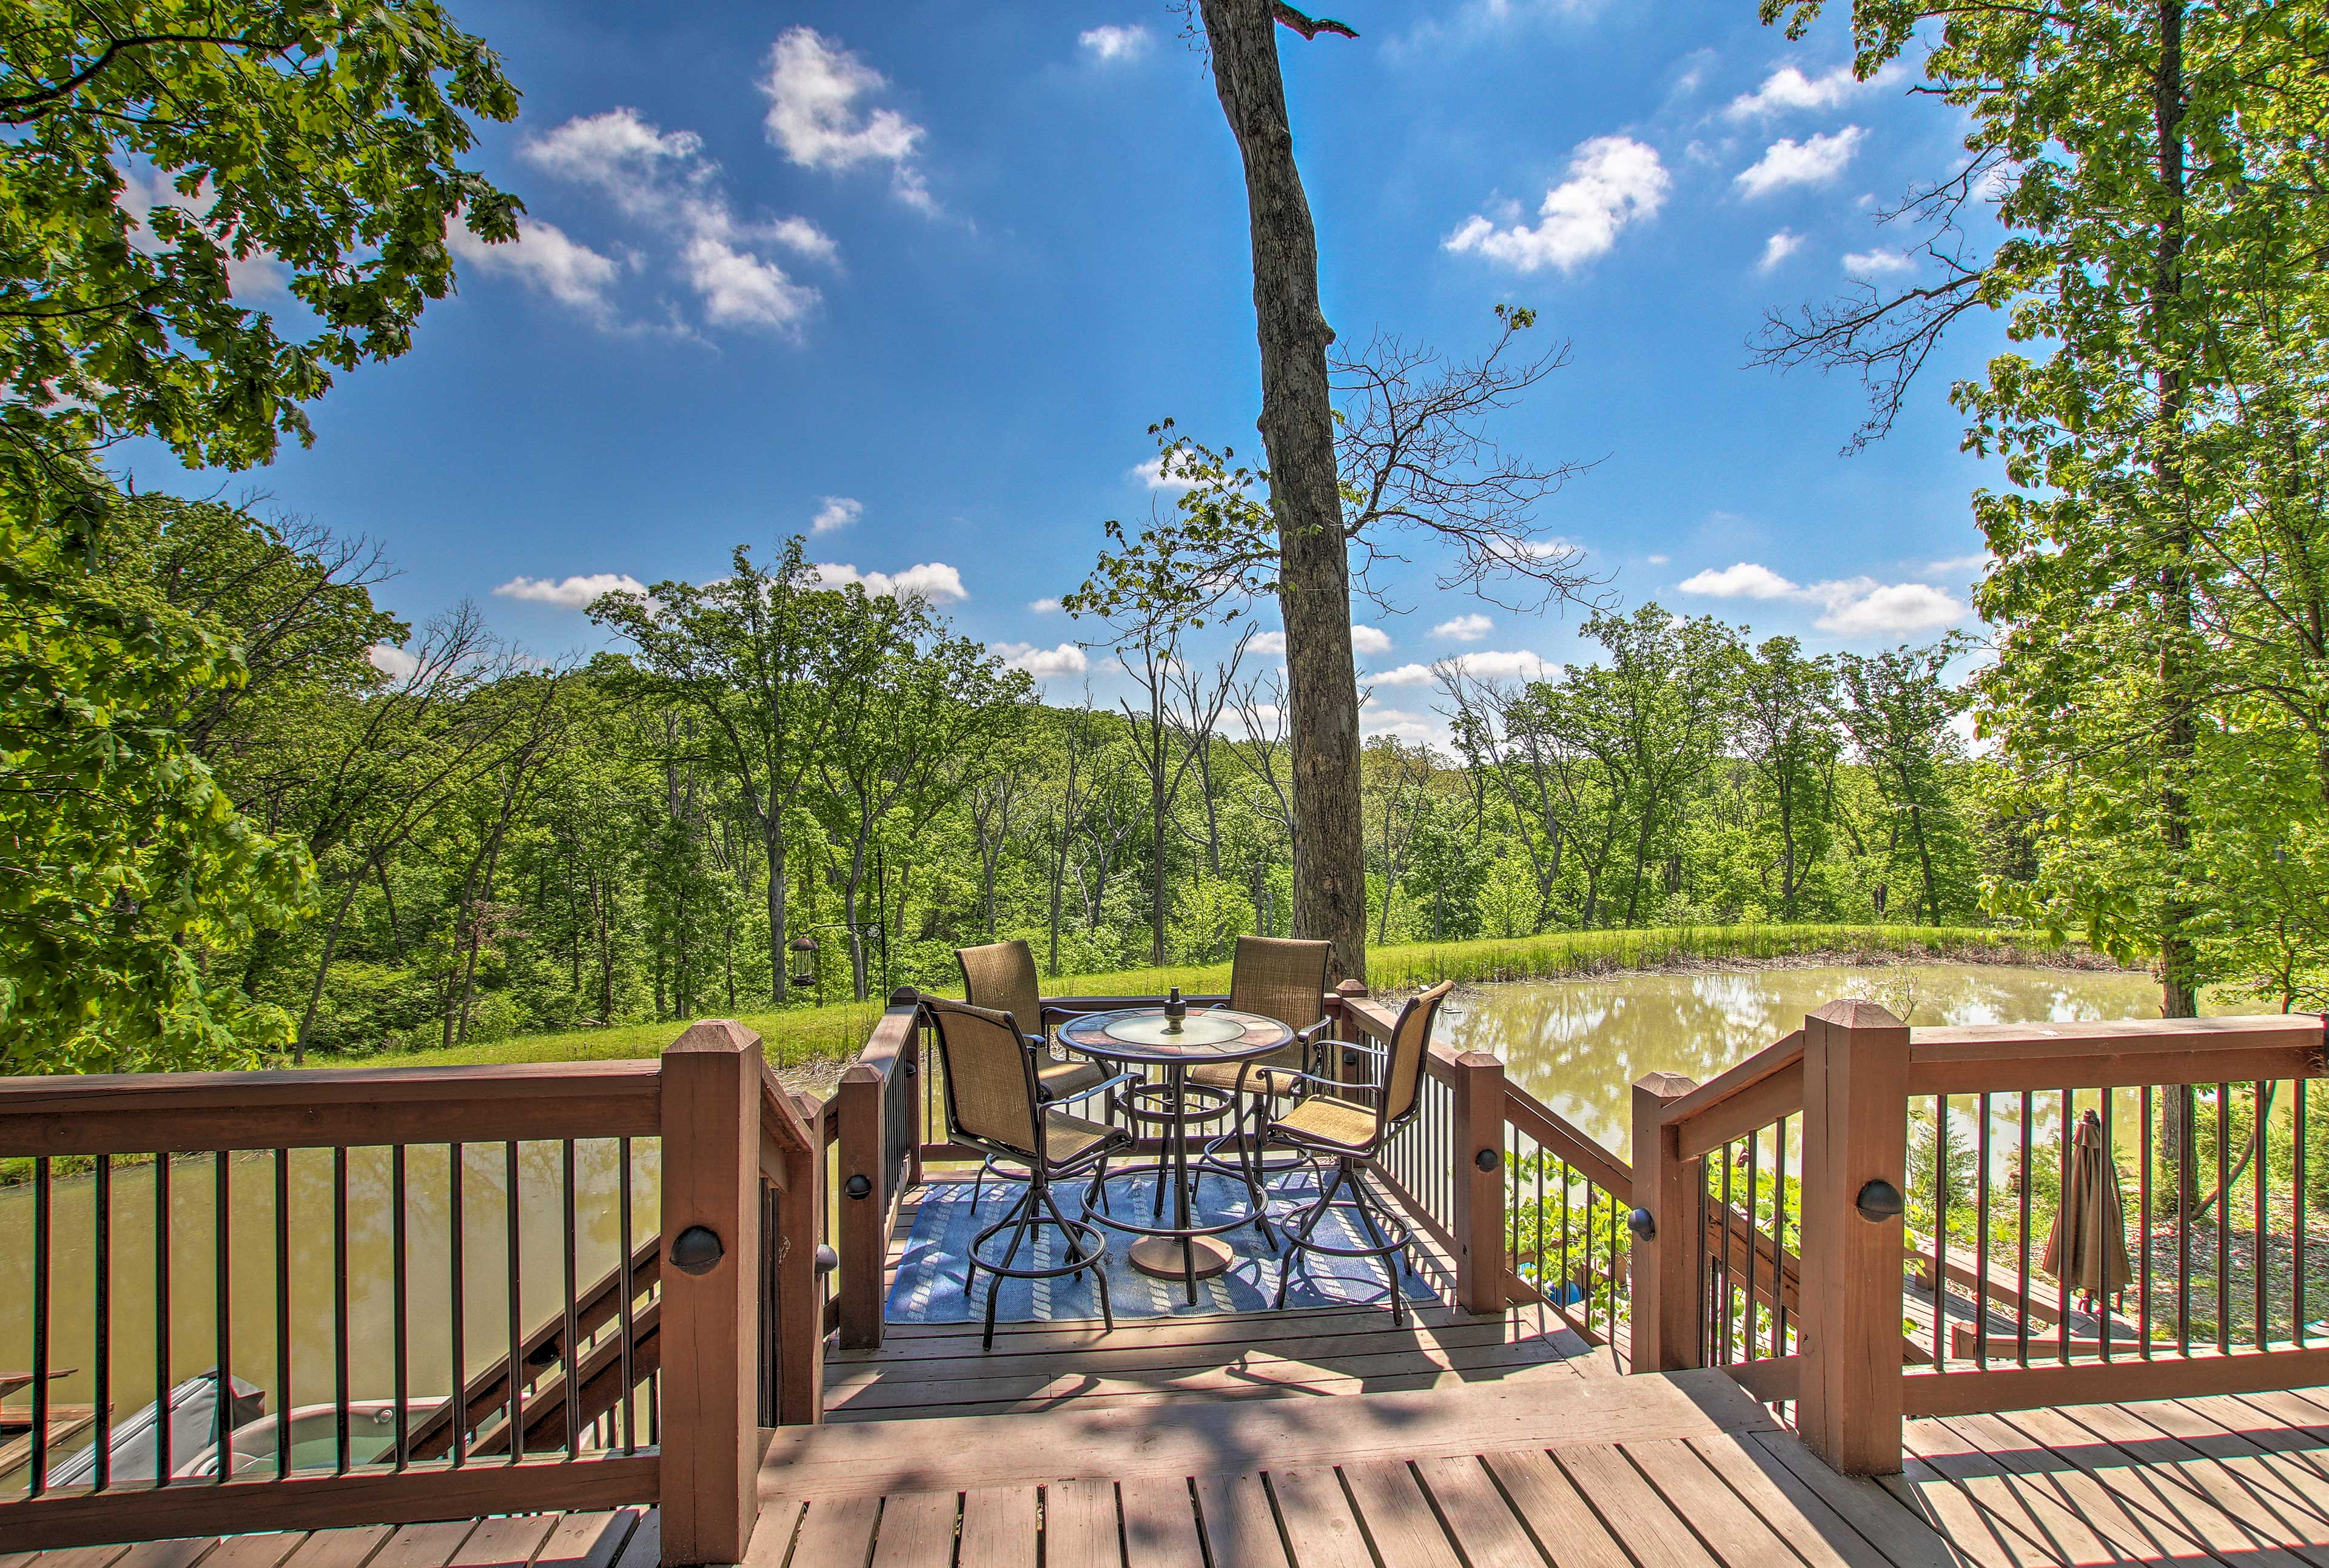 This property boasts a private hot tub, fire pit, and ring toss game!